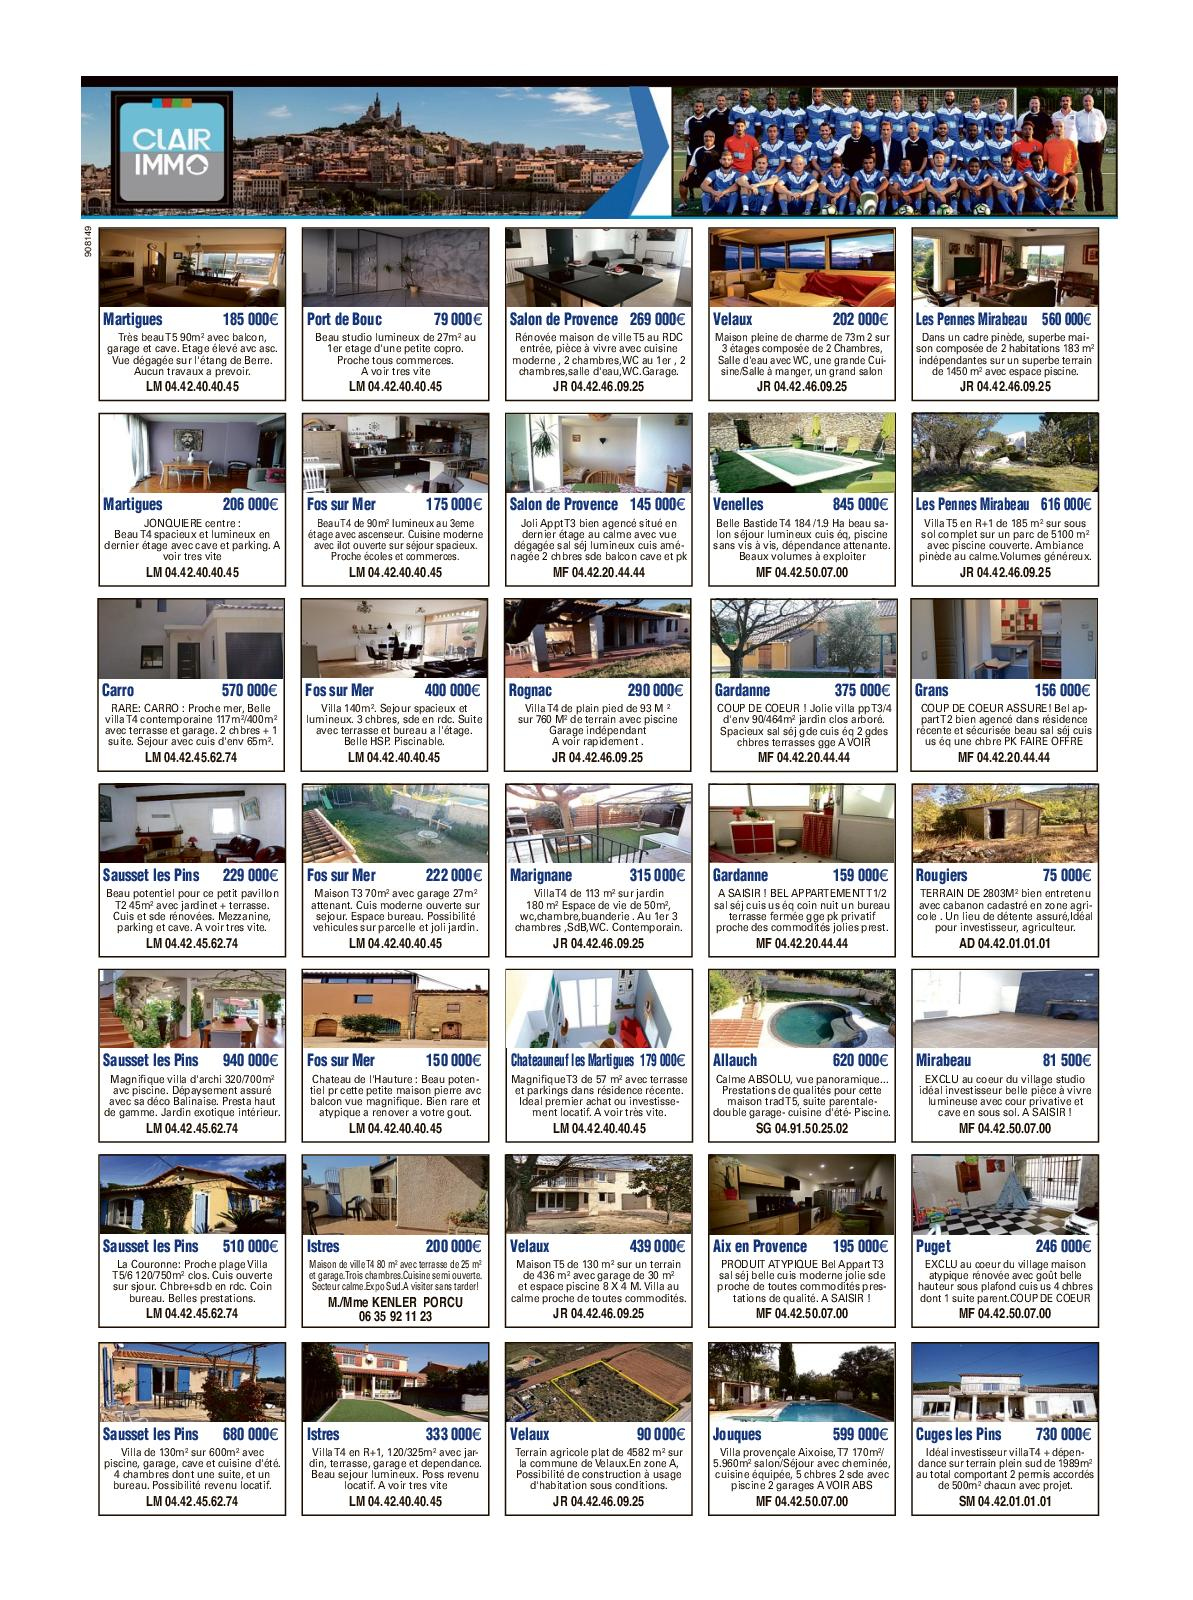 Immobilier by La Provence 14 mars 2019 - CALAMEO Downloader